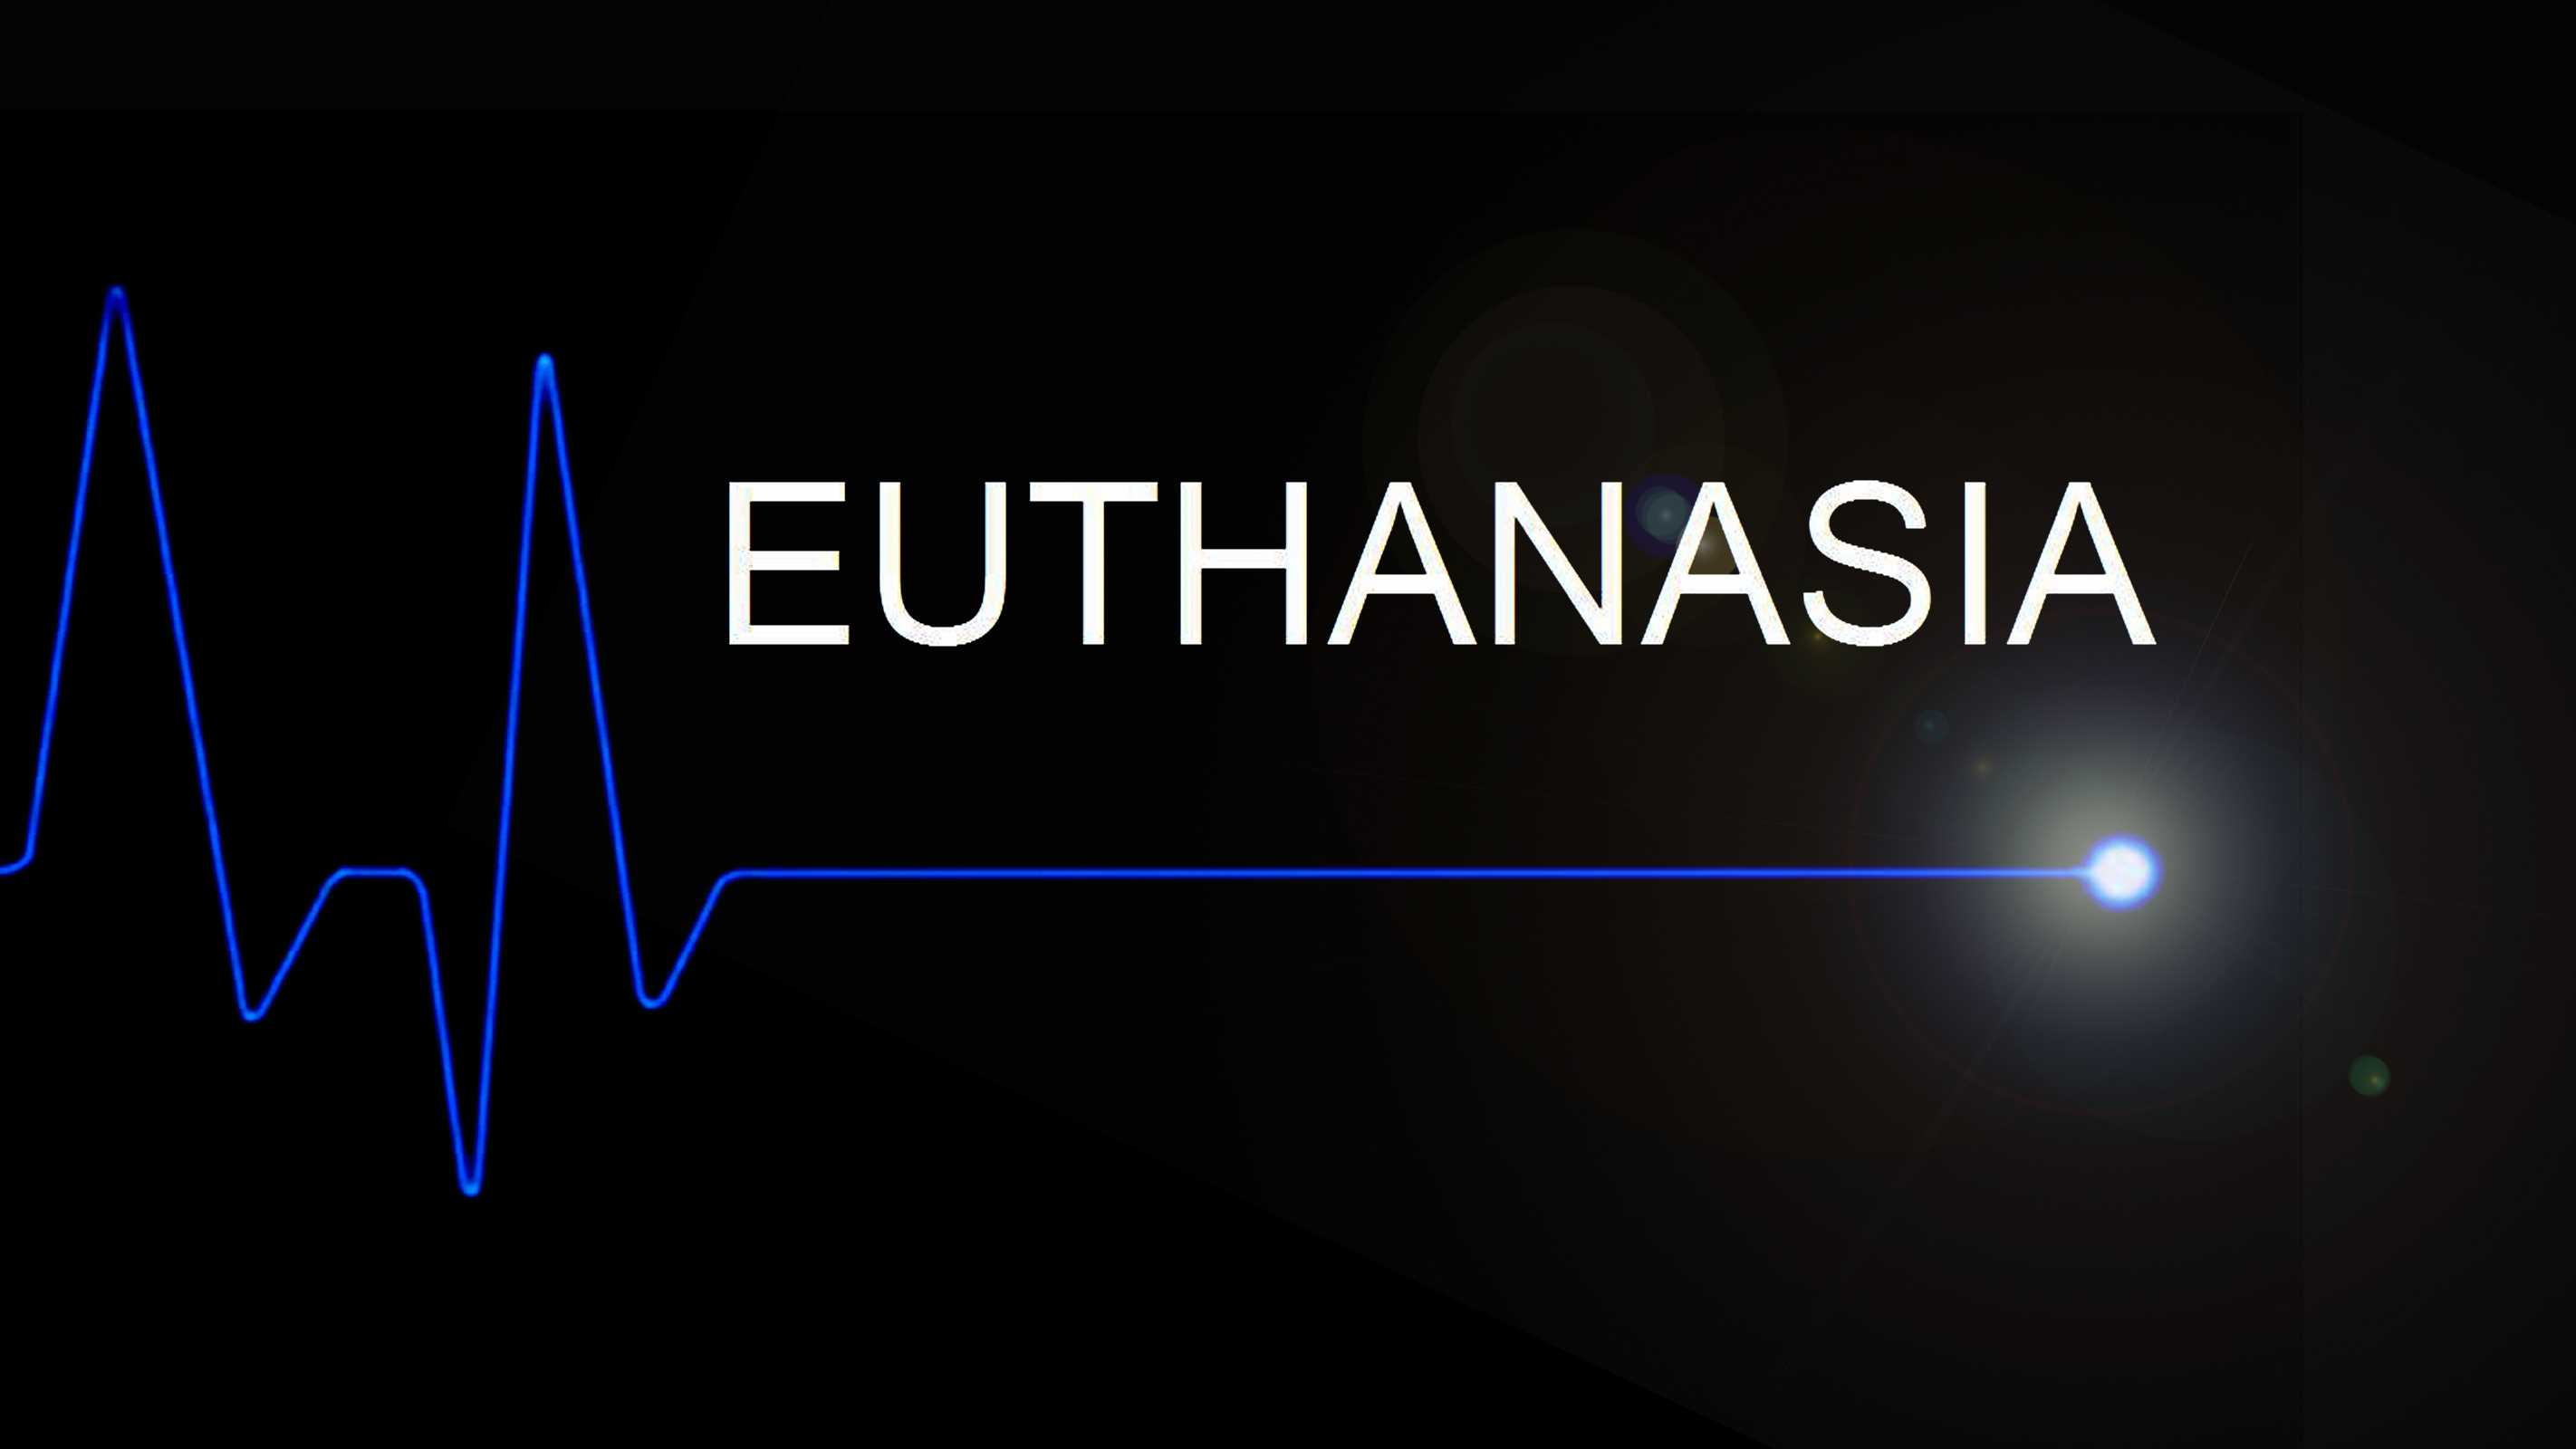 euthanasia essay essay This post explains how to write a research essay on euthanasia step-by-step guide to complete the writing assignment.